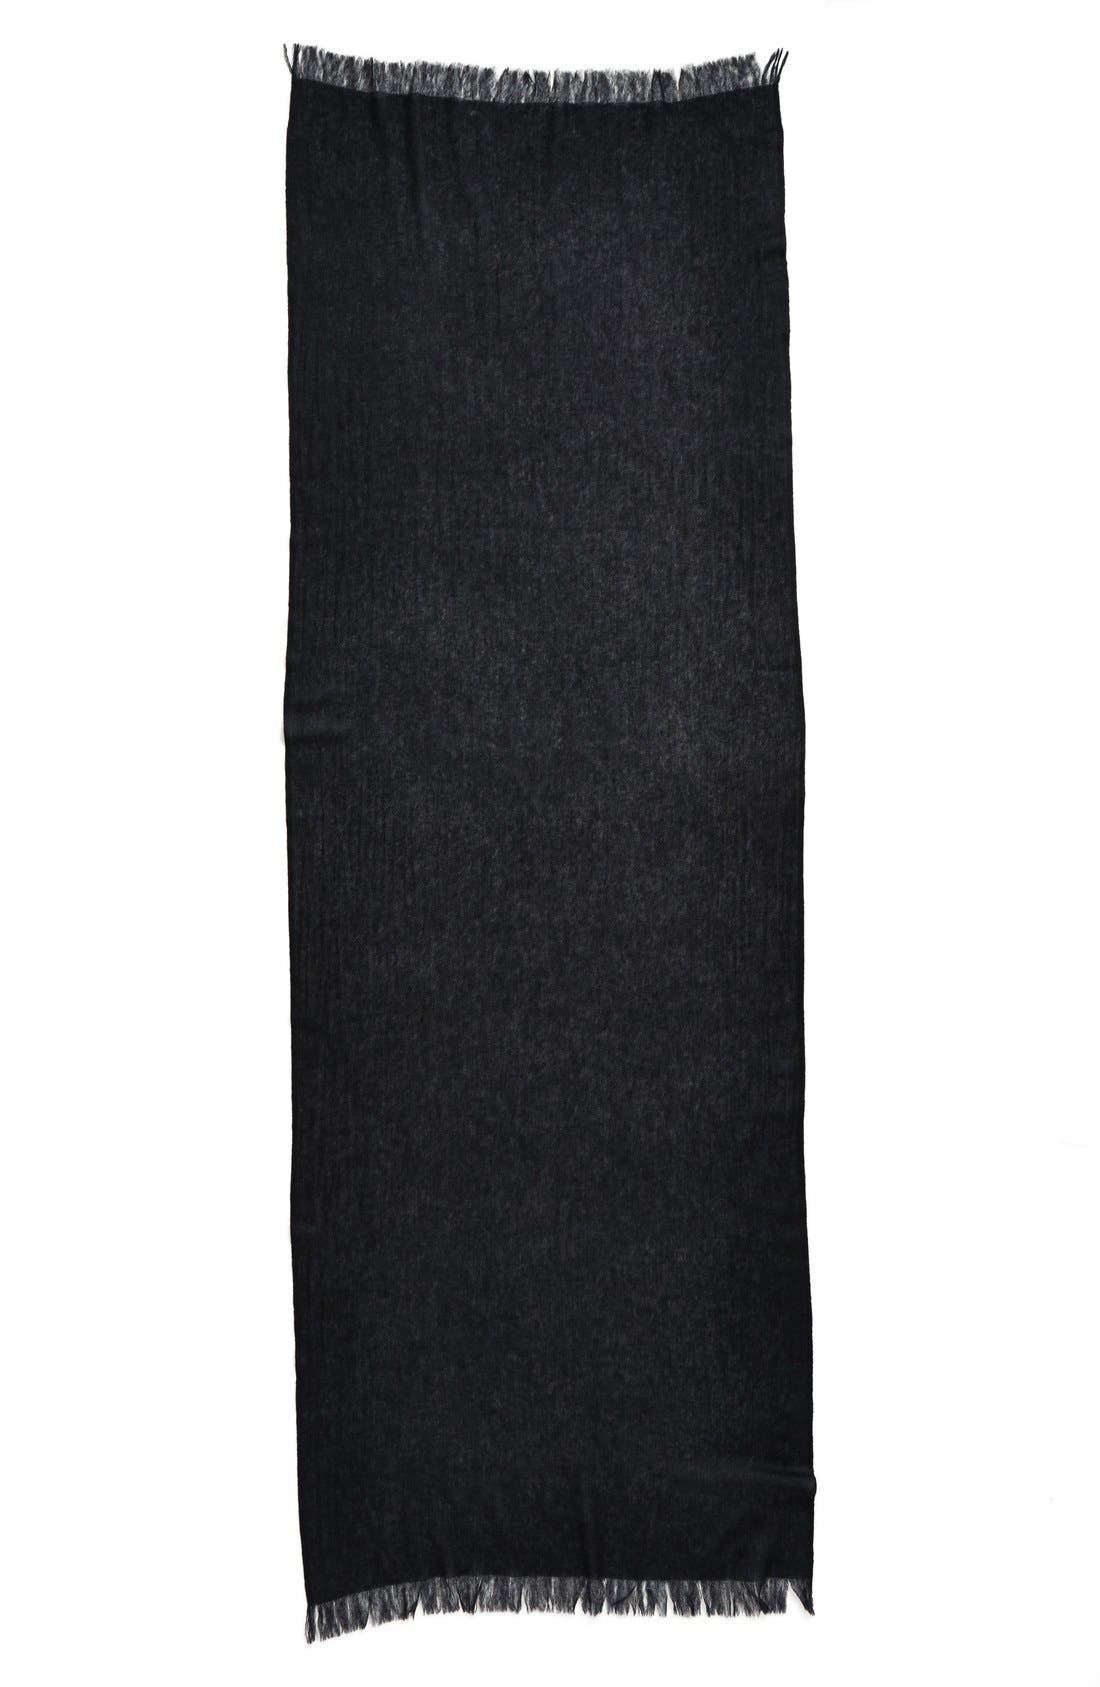 Caslon<sup>®</sup> Heathered Cashmere Gauze Scarf,                             Alternate thumbnail 7, color,                             001